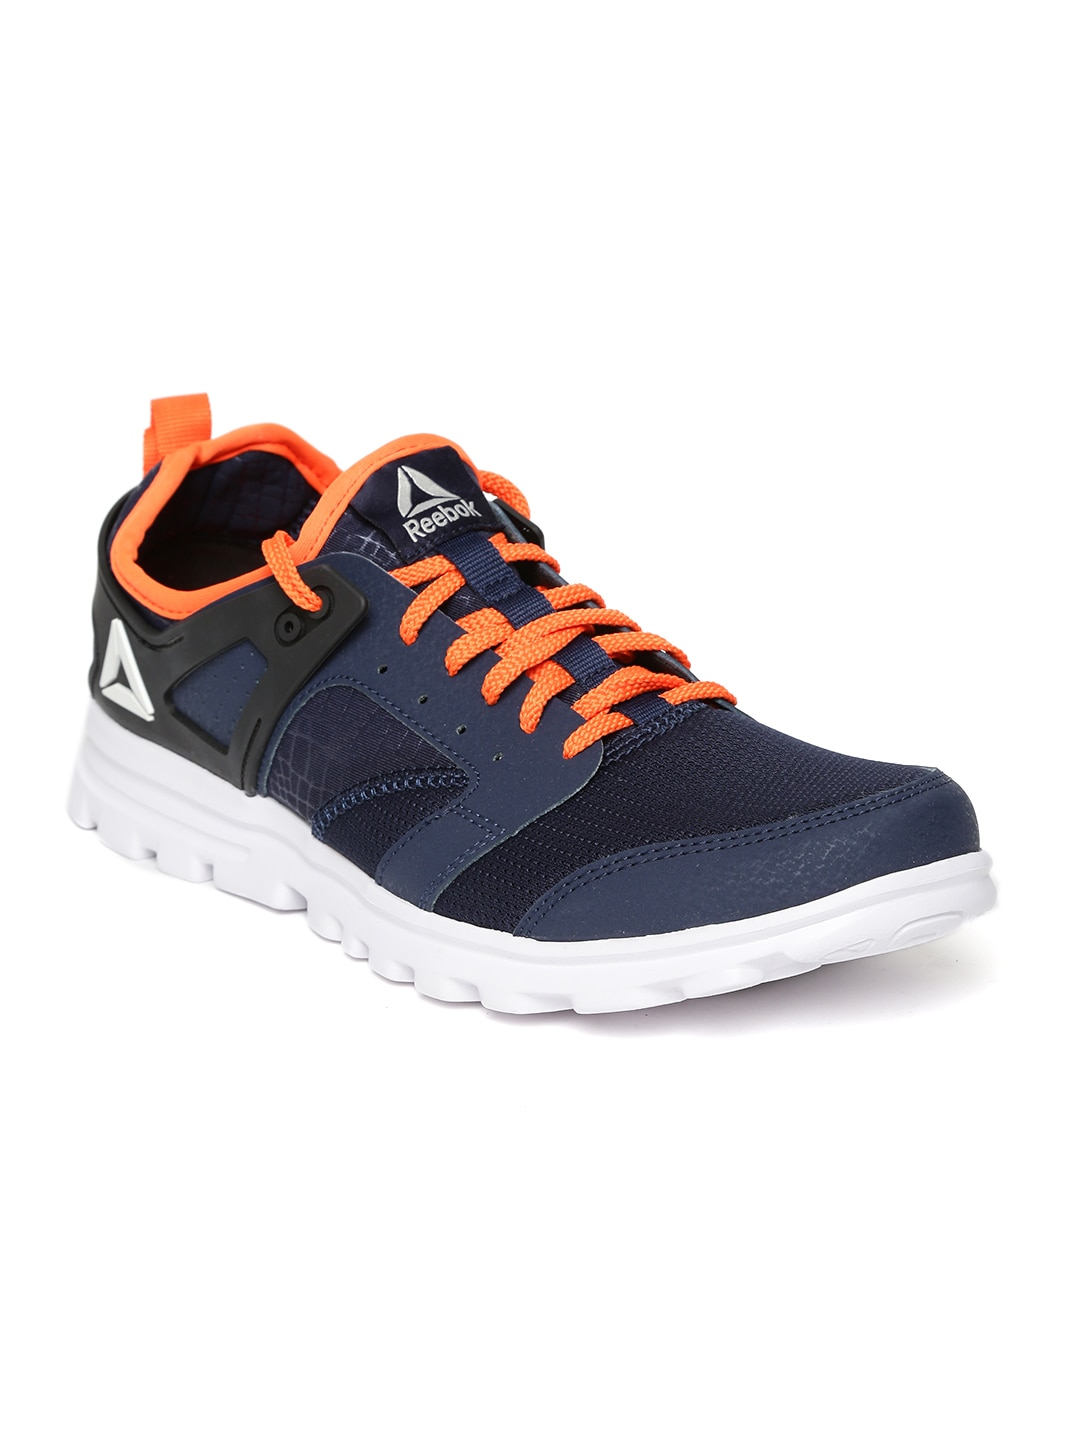 9a2205b9e Men Reebok - Buy Men Reebok online in India